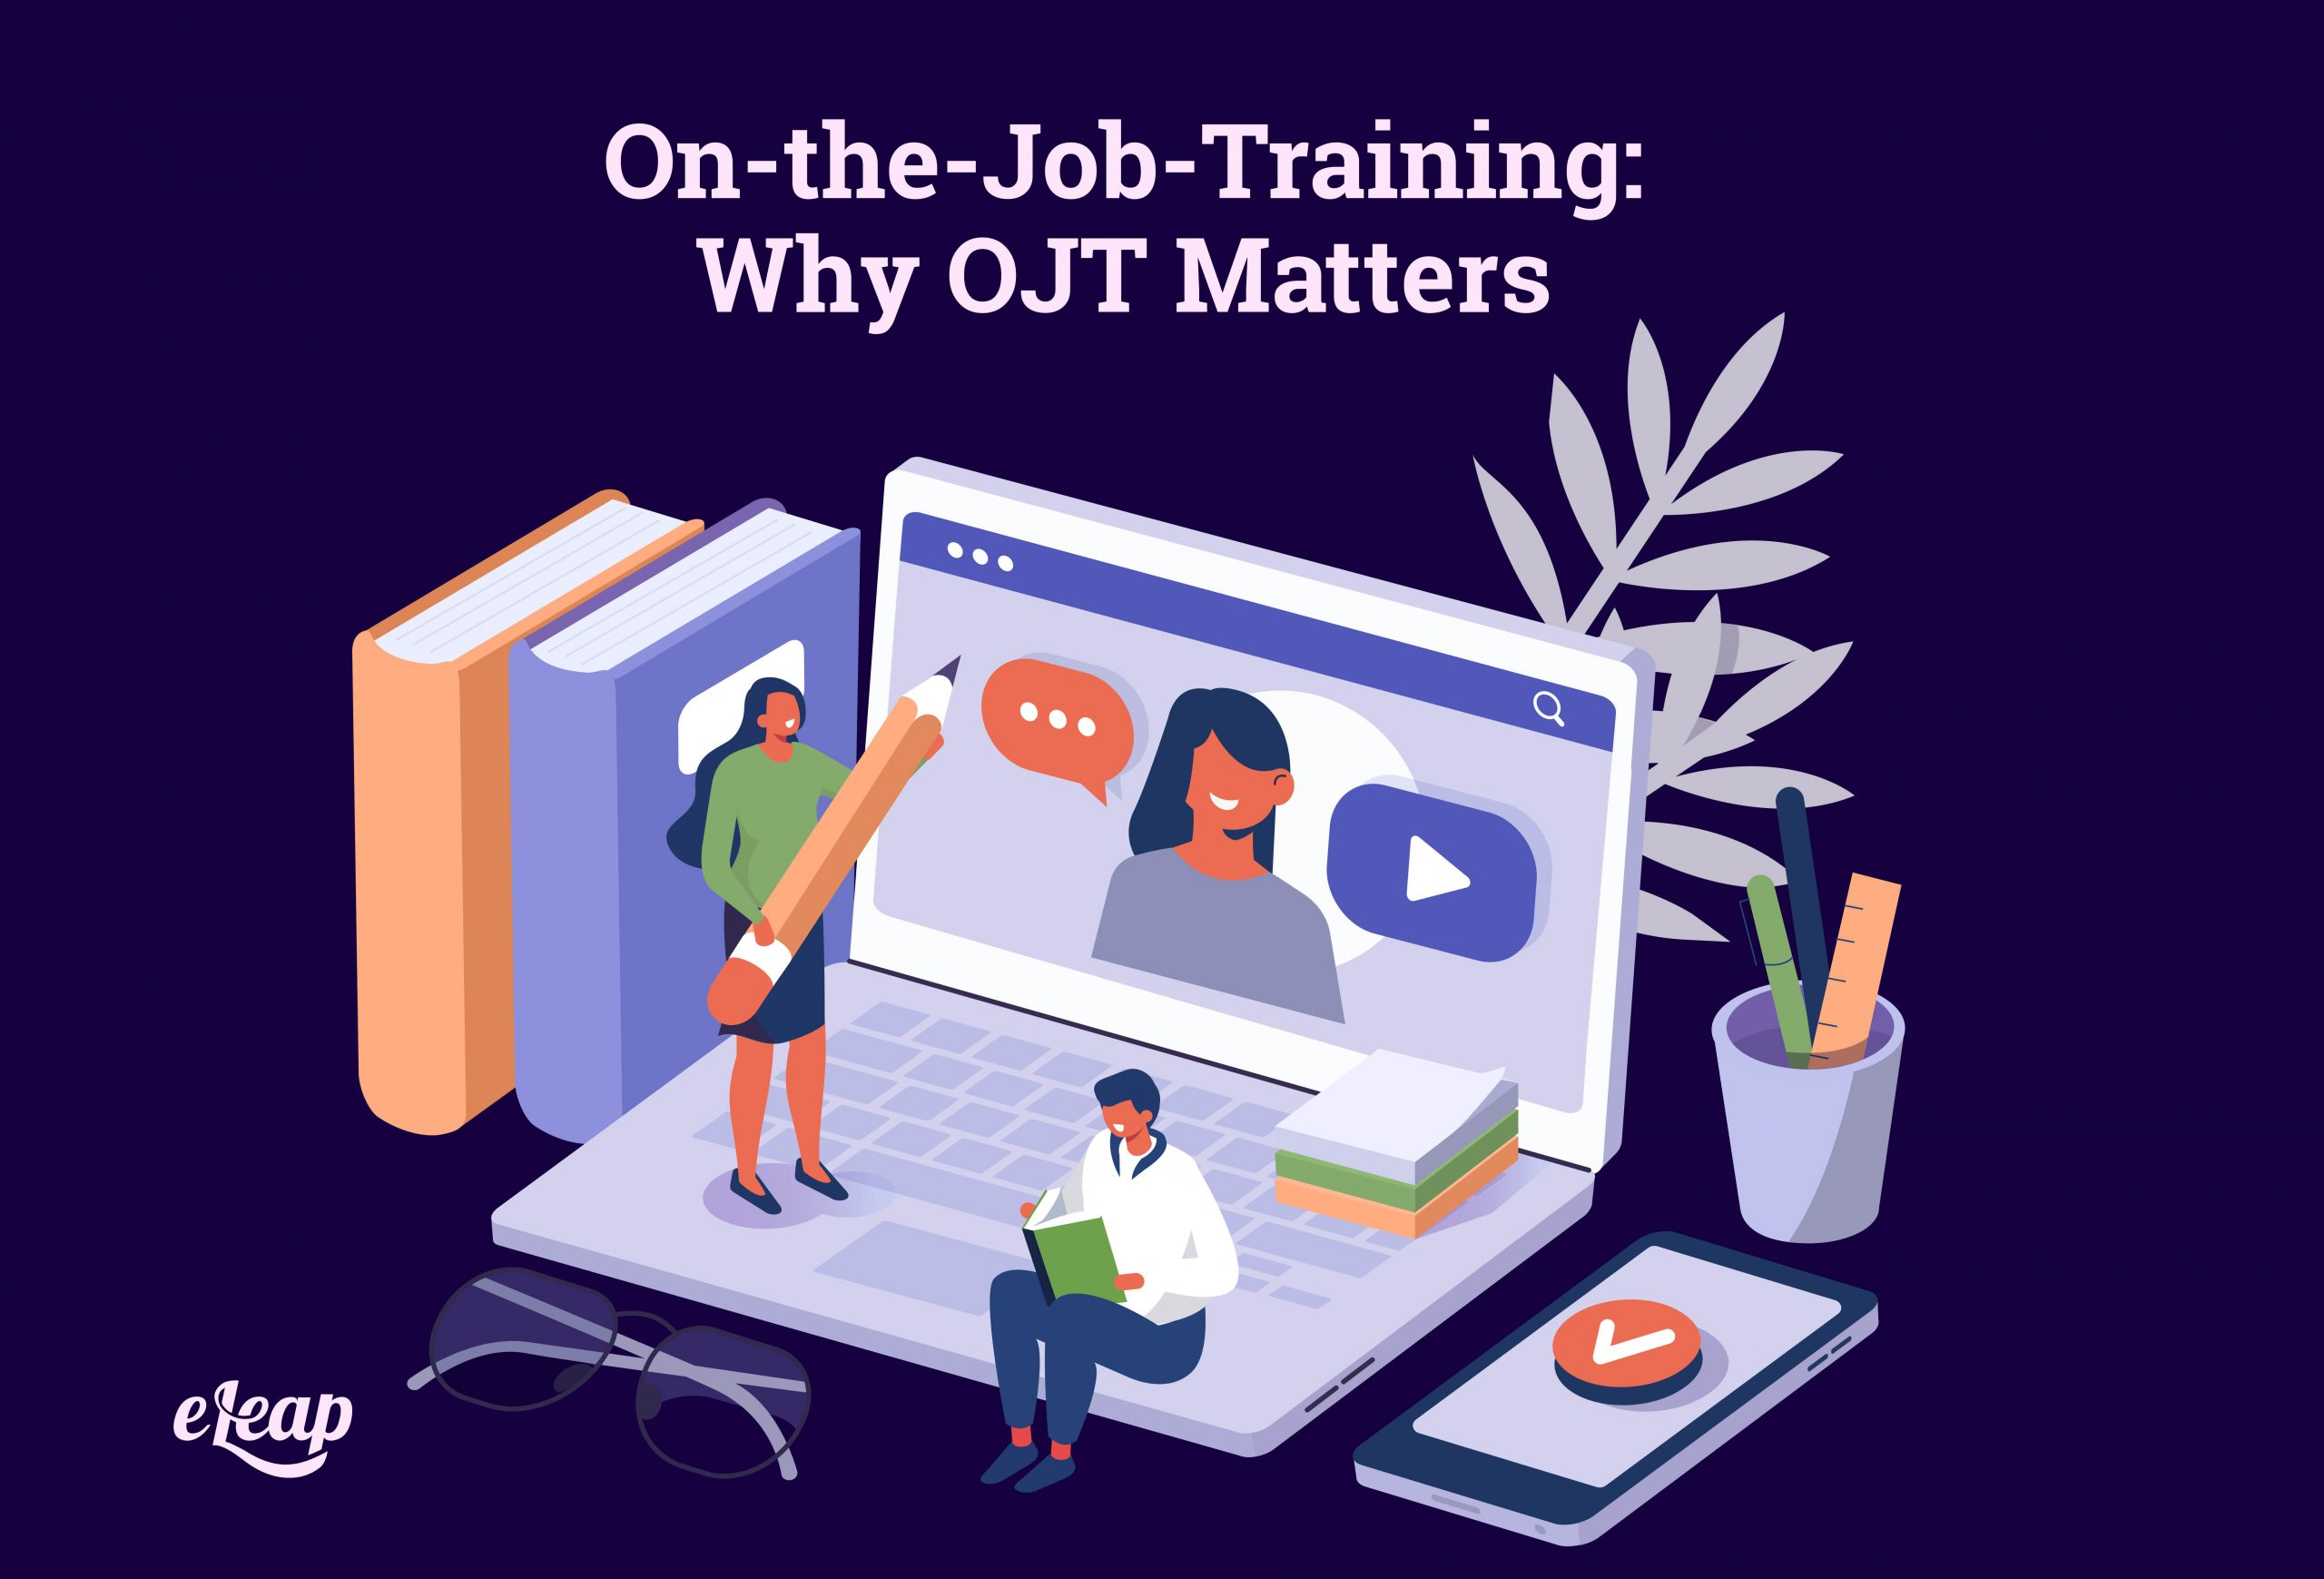 On-the-Job-Training: Why OJT Matters